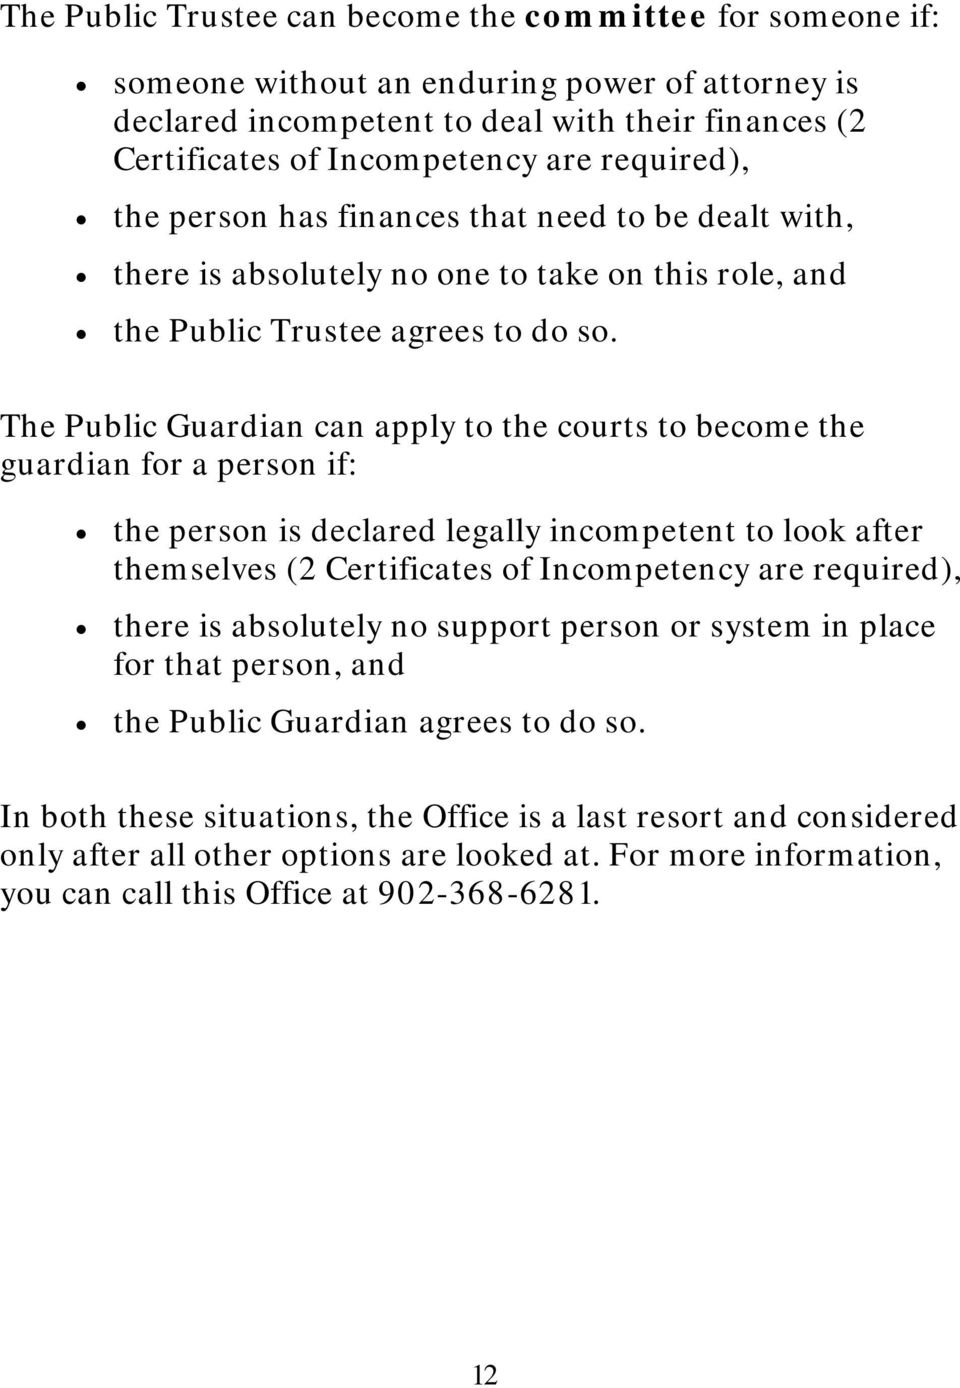 The Public Guardian can apply to the courts to become the guardian for a person if: the person is declared legally incompetent to look after themselves (2 Certificates of Incompetency are required),